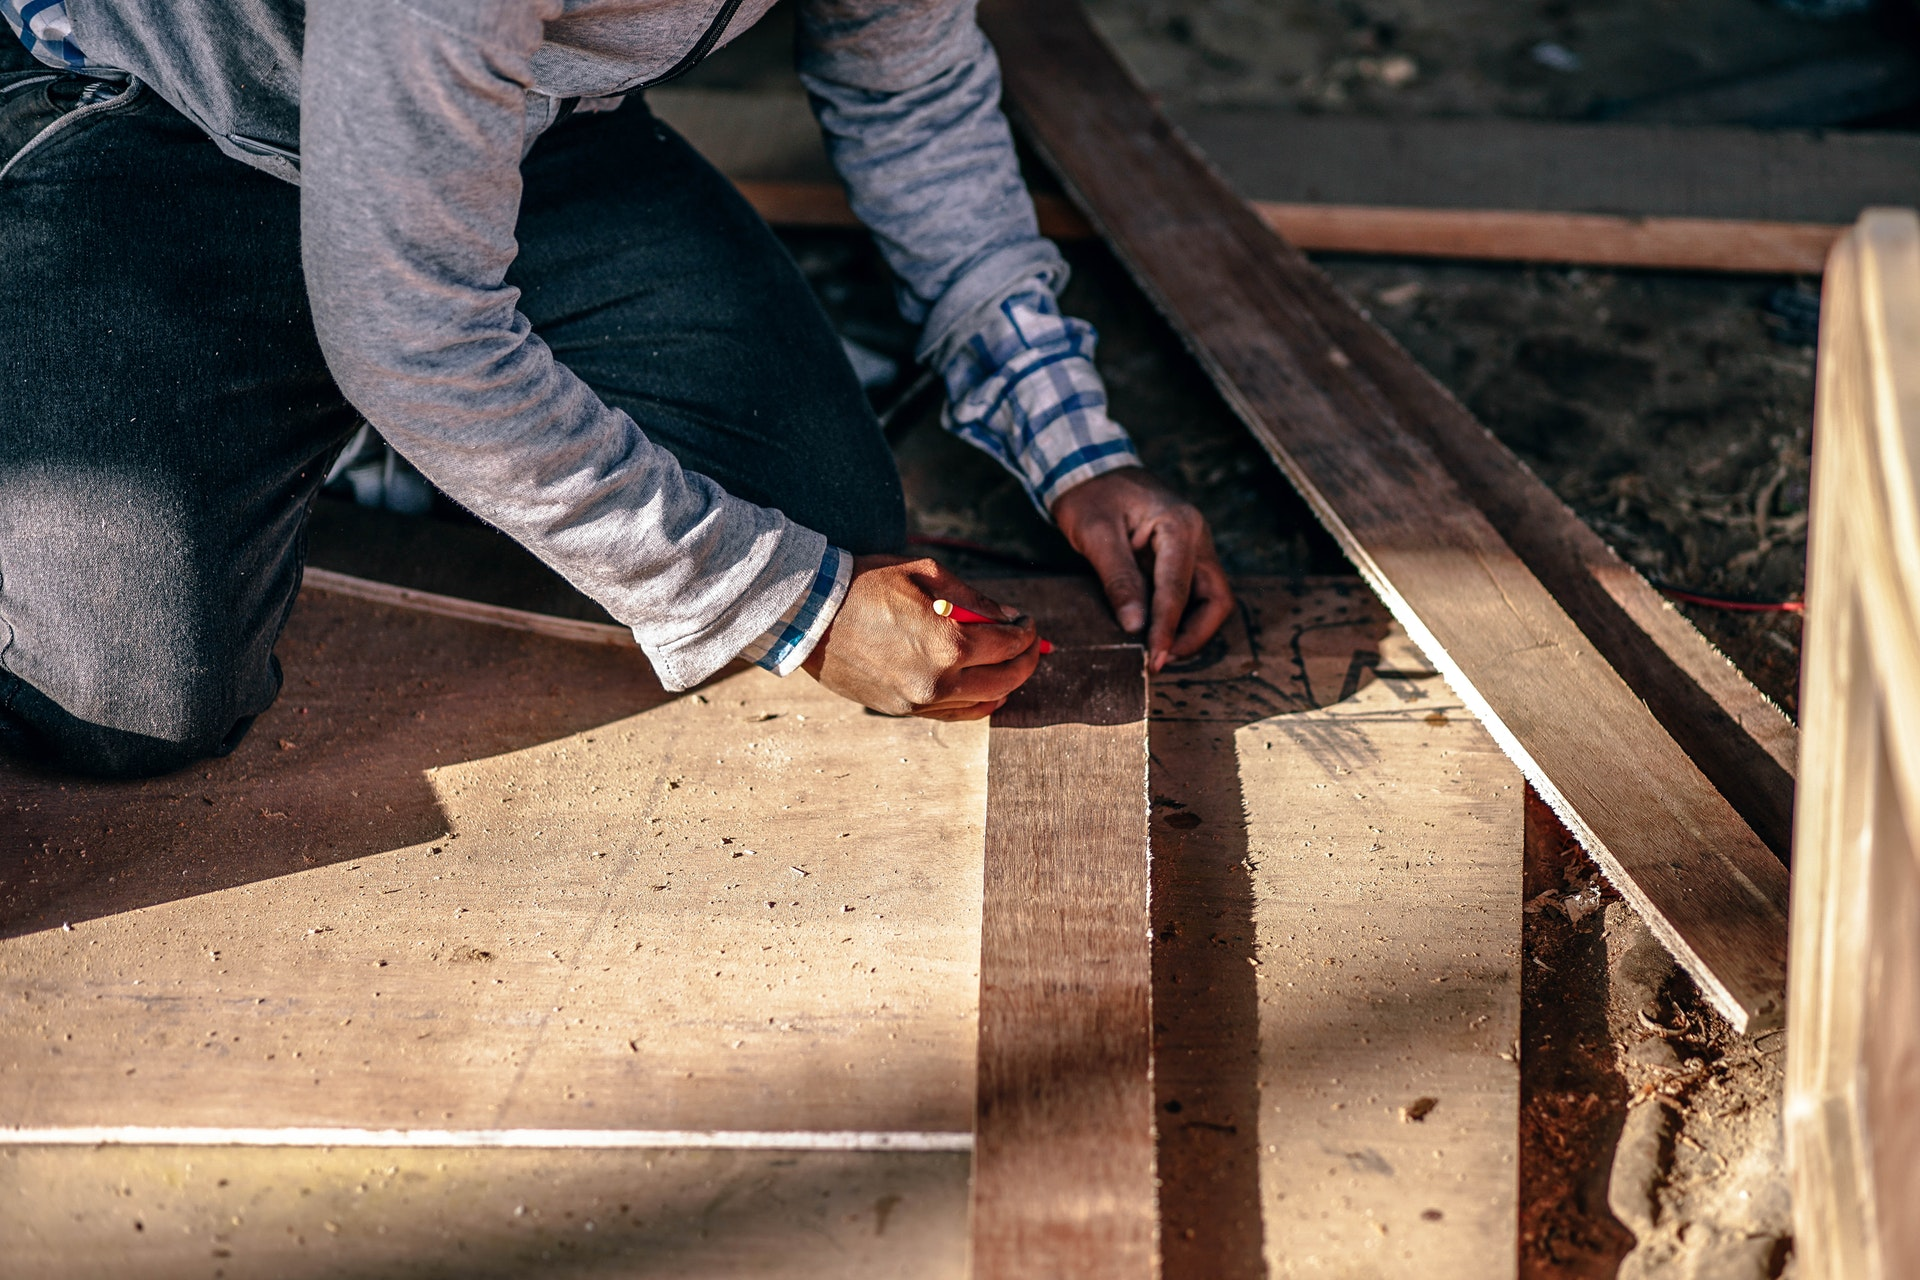 An image showing a carpenter at work